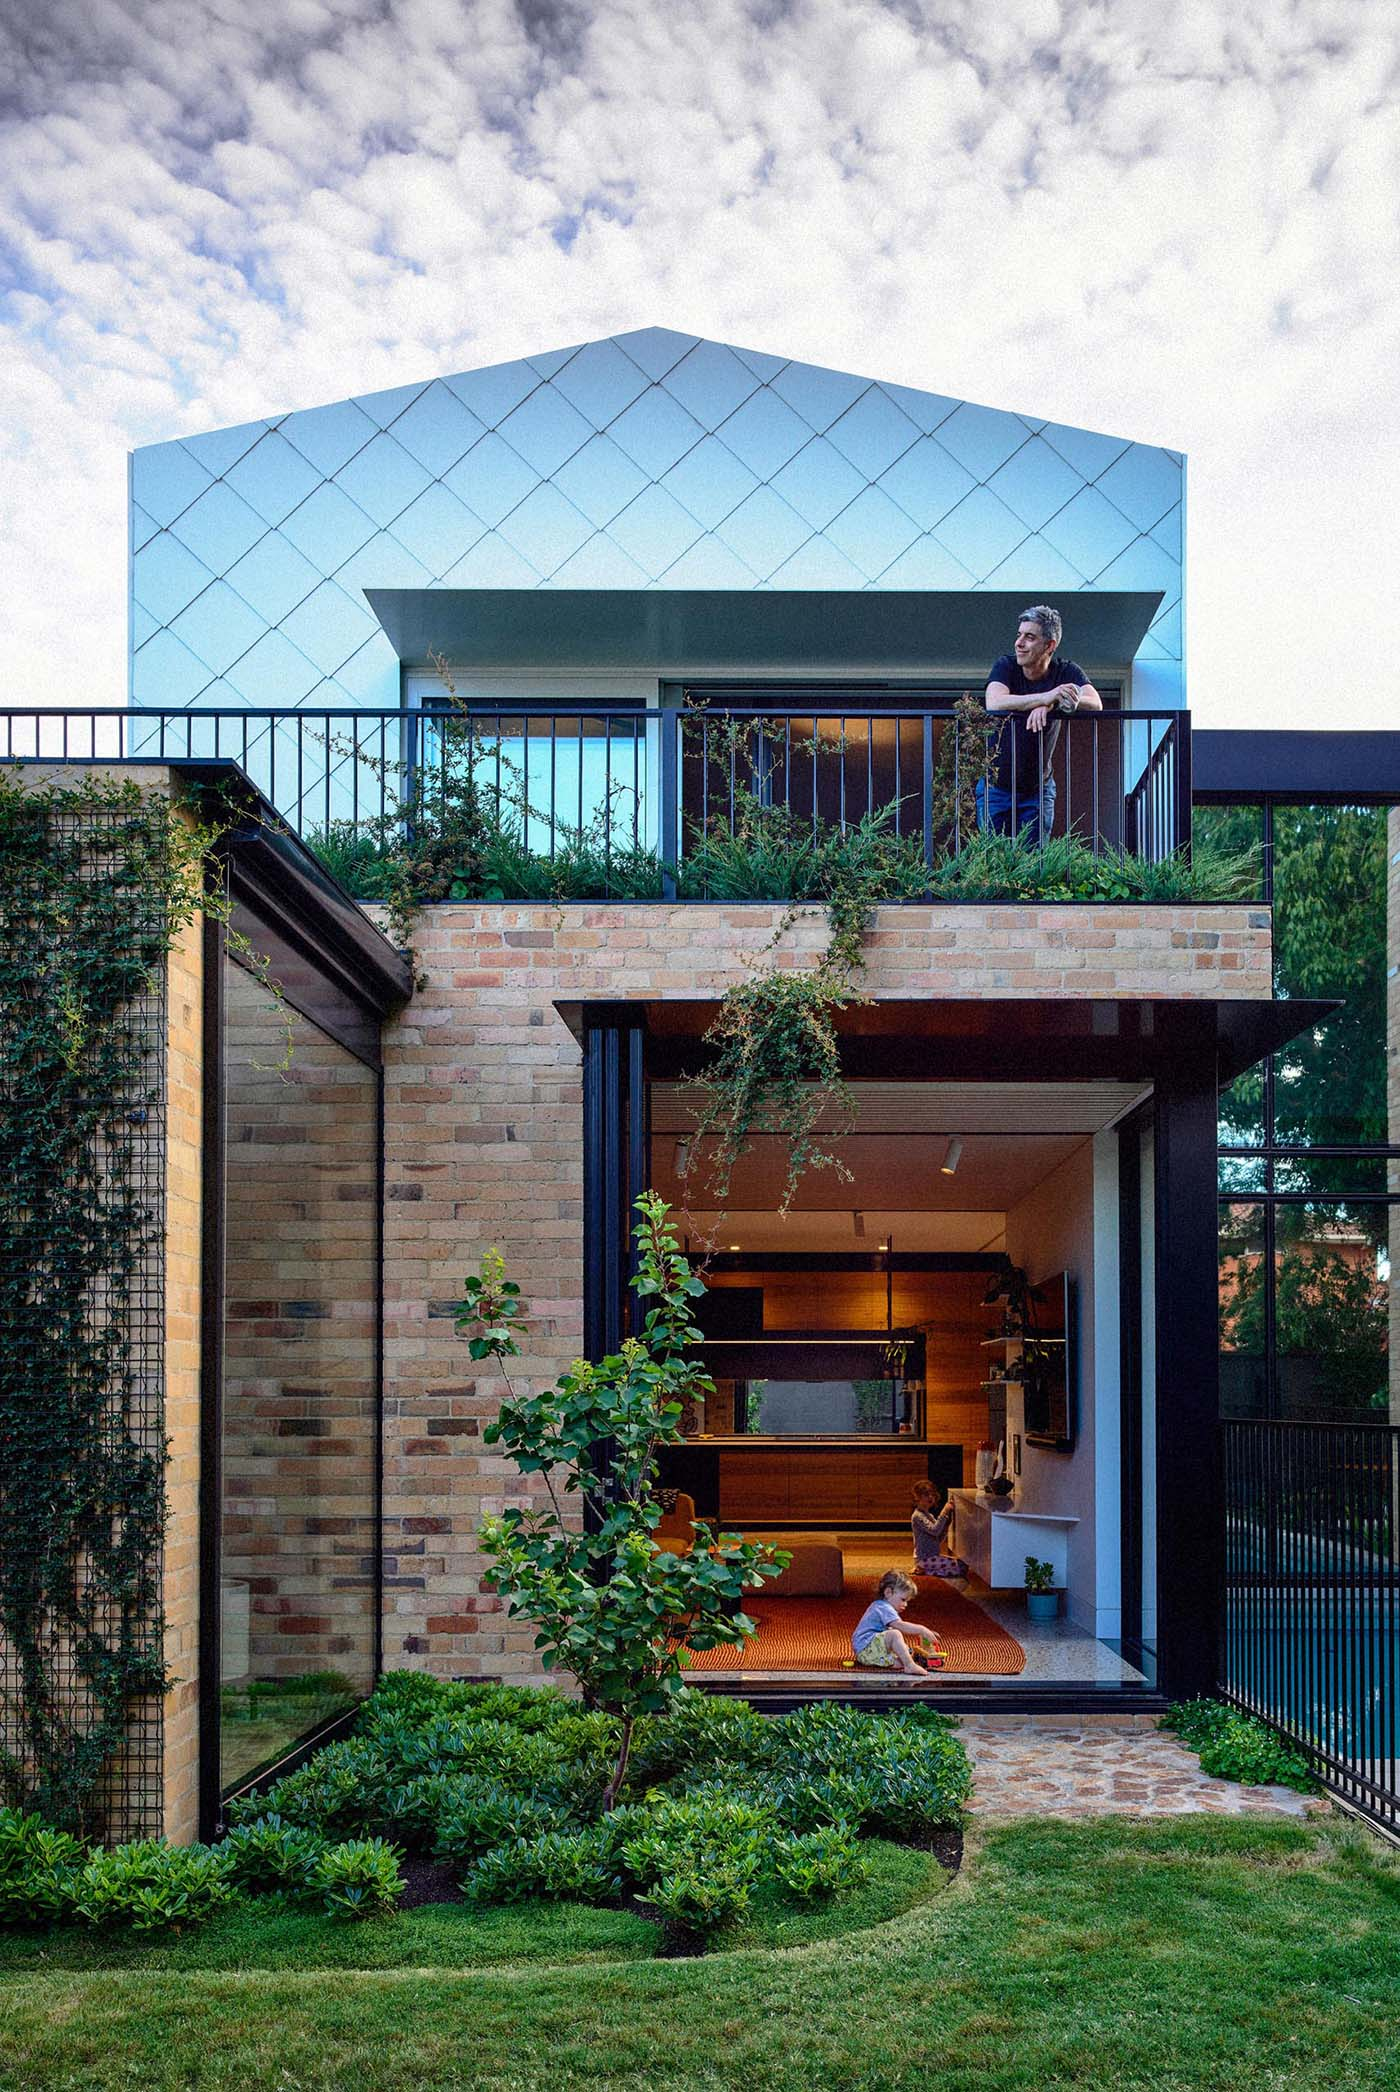 A modern home with indoor/outdoor living spaces, has been built using recycled yellow brick and metal shingles.